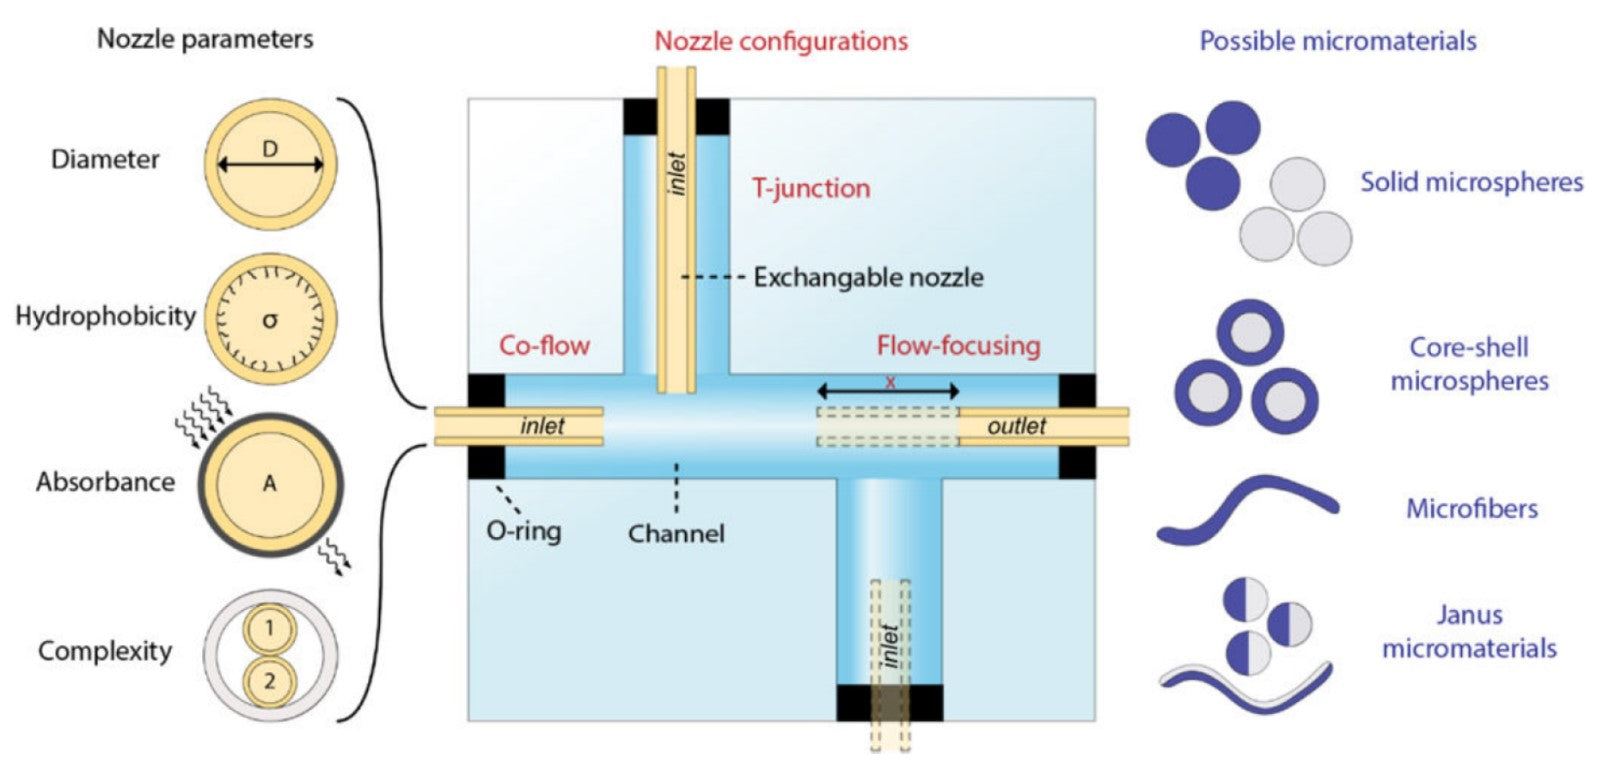 Schematic concept of exchangeable nozzles within a multifunctional 3D microfluidic device for versatile monodisperse micromaterials production.